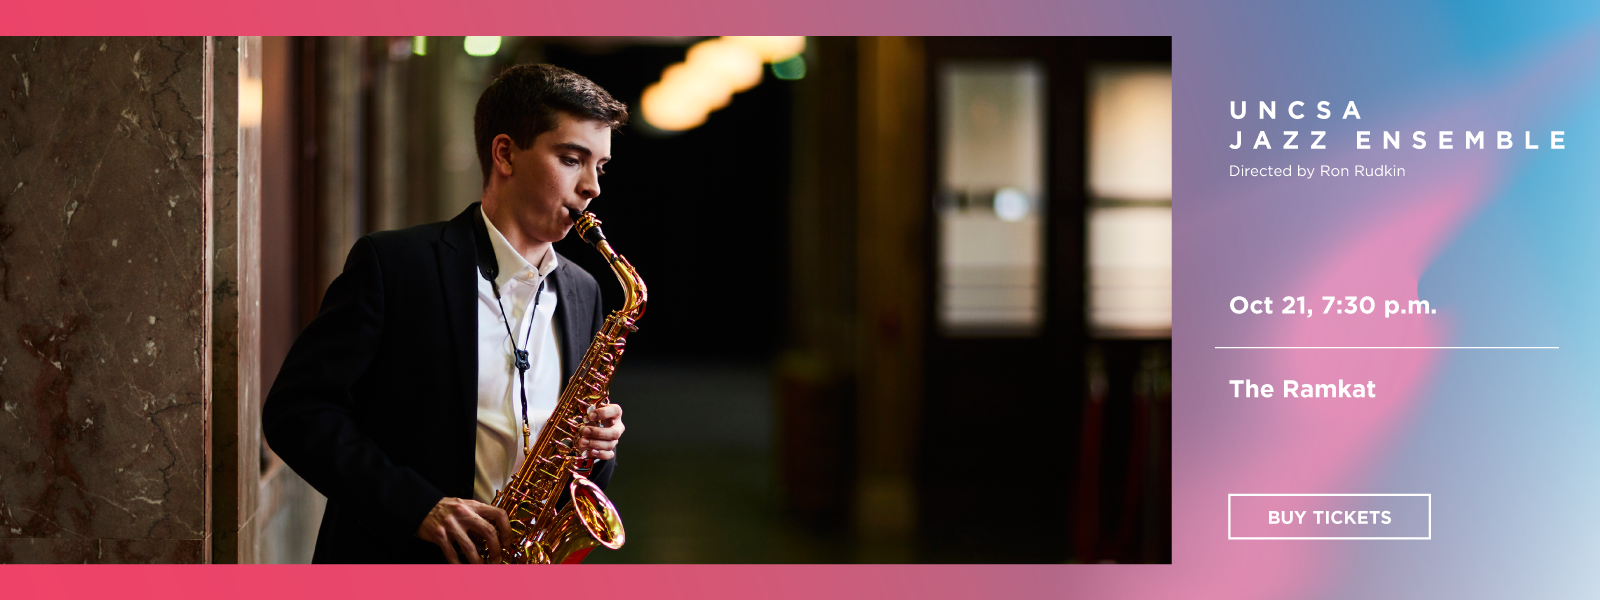 Award-winning Jazz Ensemble performs a varied program of styles, including traditional swing, Latin and contemporary at The Ramkat.>>BUY TICKETS